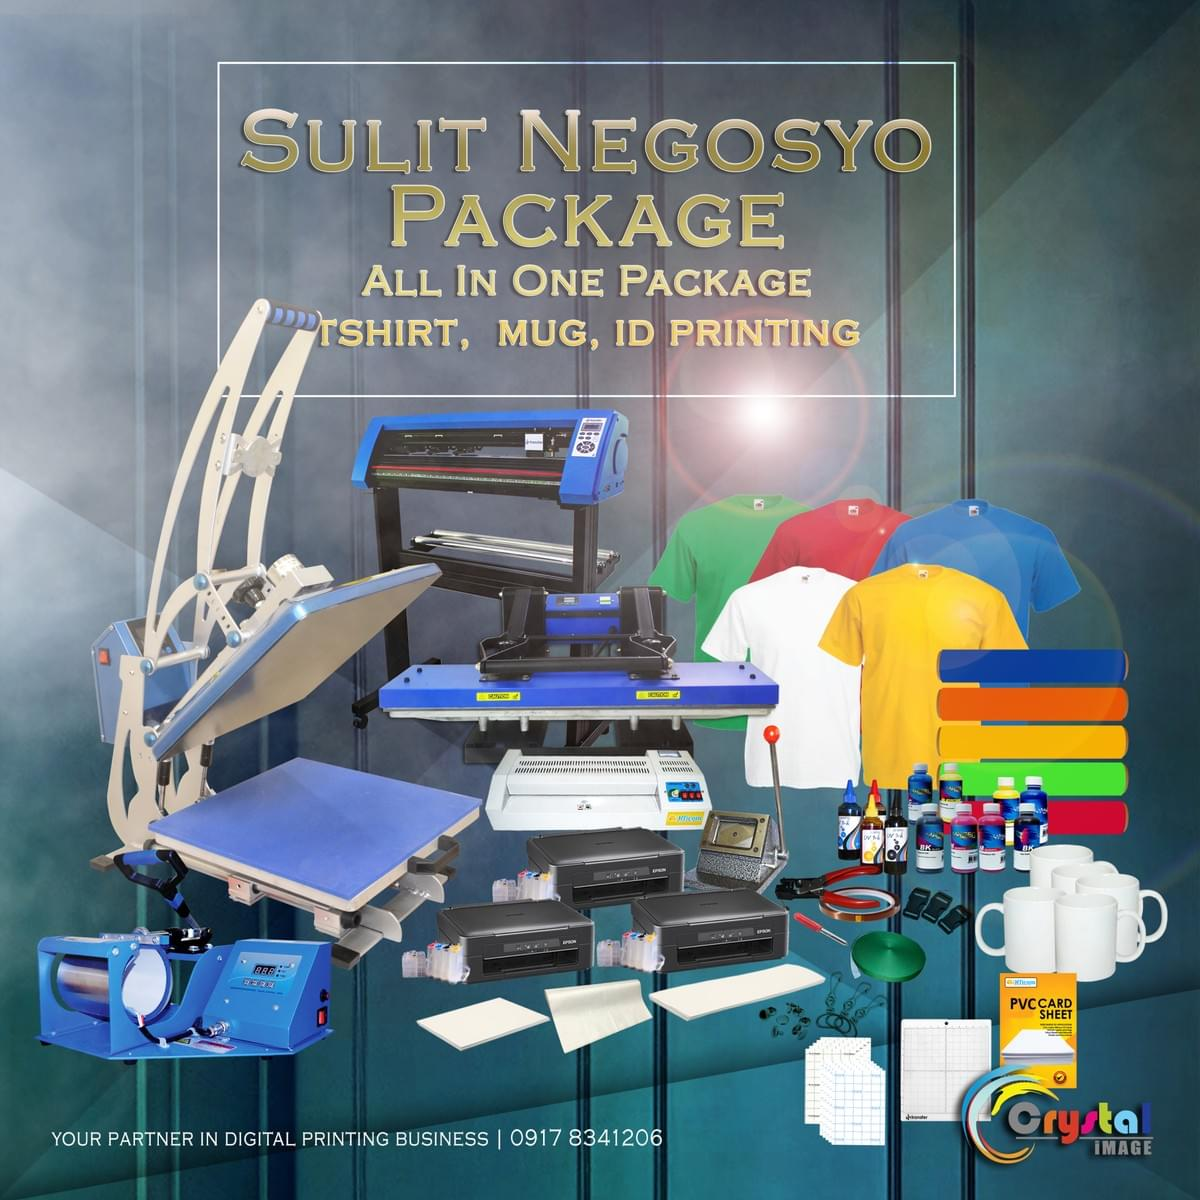 Sublimation printing guide Philippines